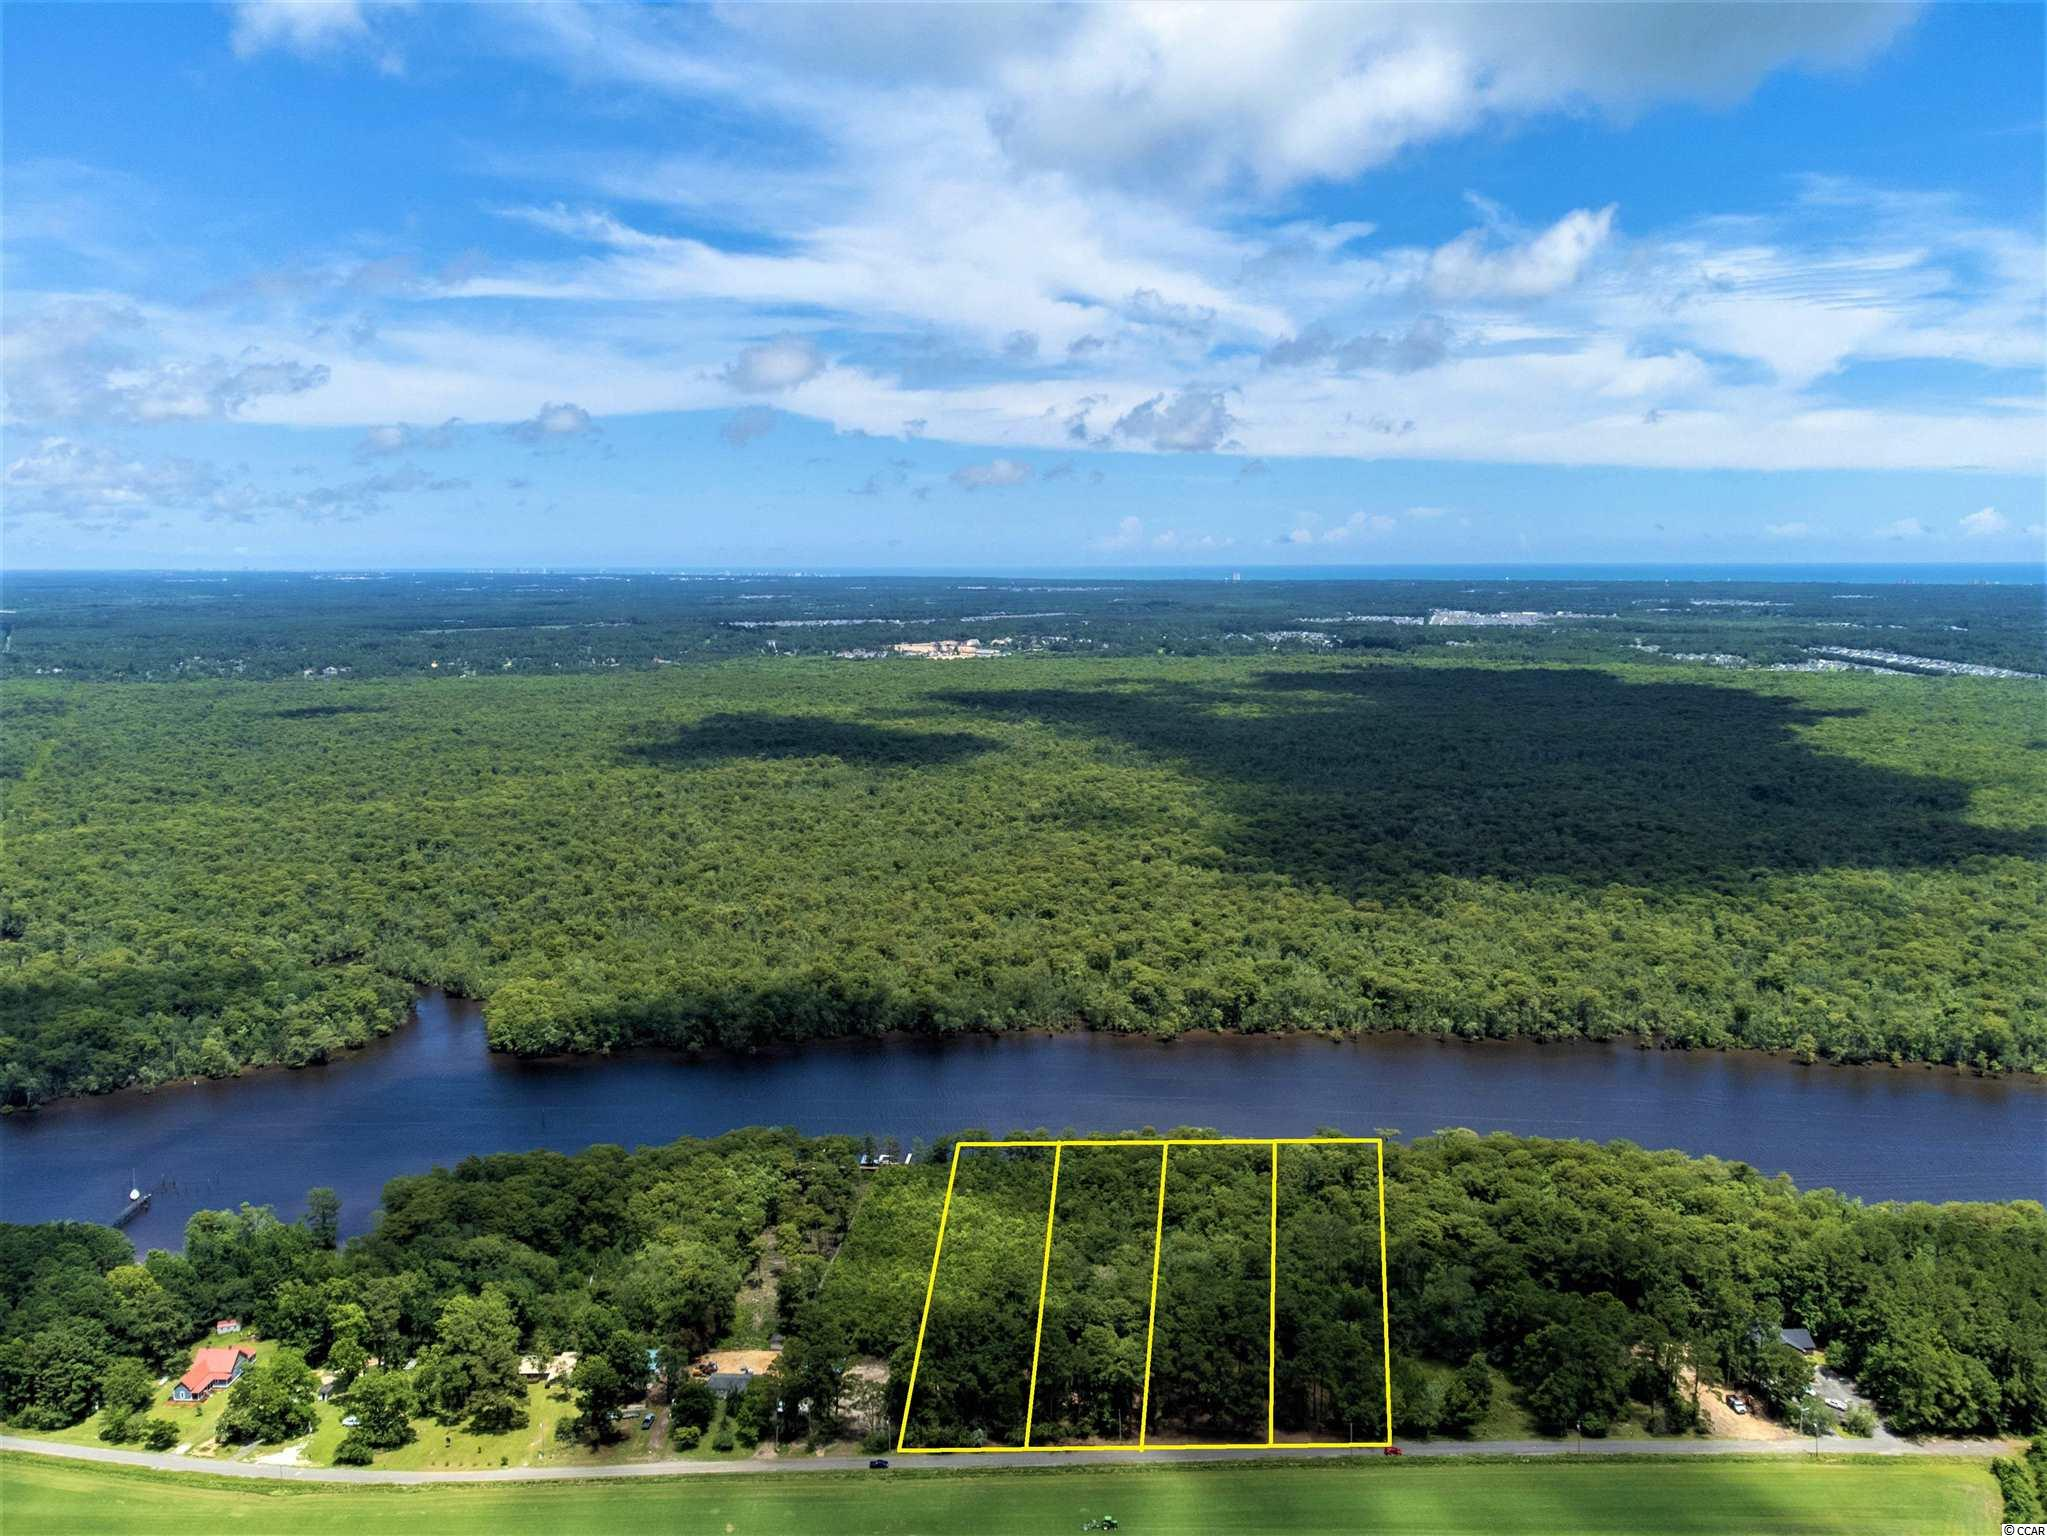 Excellent opportunity to buy larger than average waterfront lots directly on the Waccamaw River and ICW next to the currently expanding Bucksport marina. See videos and pictures.  Sewer available with Grand Strand Sewer and Water Water available with Bucksport Water ** Coming in the future is an expressway linking Bucksport and Surfside Beach, dramatically increasing desirability in this area.